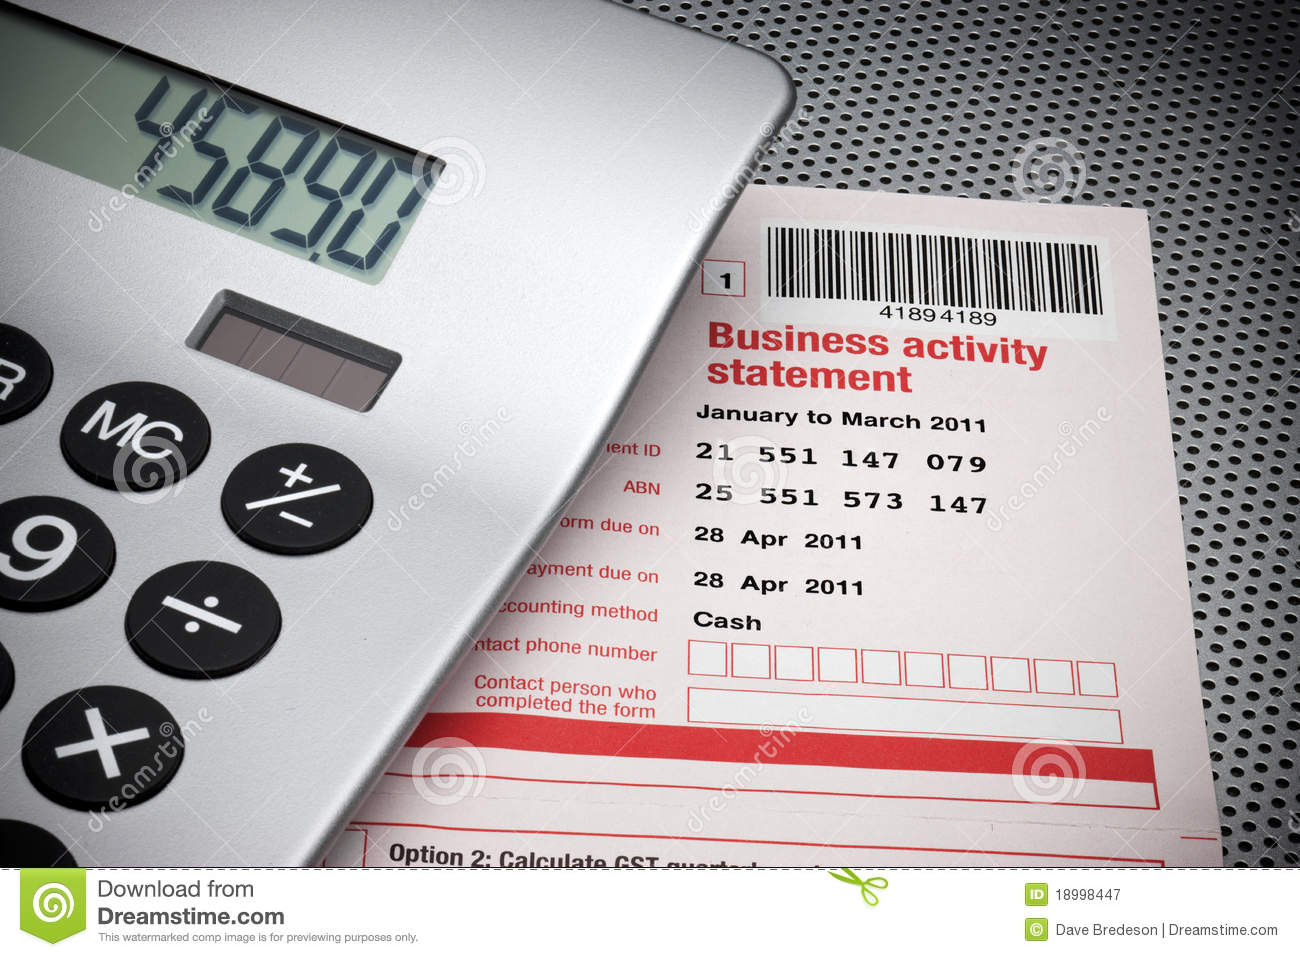 Business activity statement tax stock image image of quarterly an australian business activity tax statement form with a calculator cheaphphosting Images